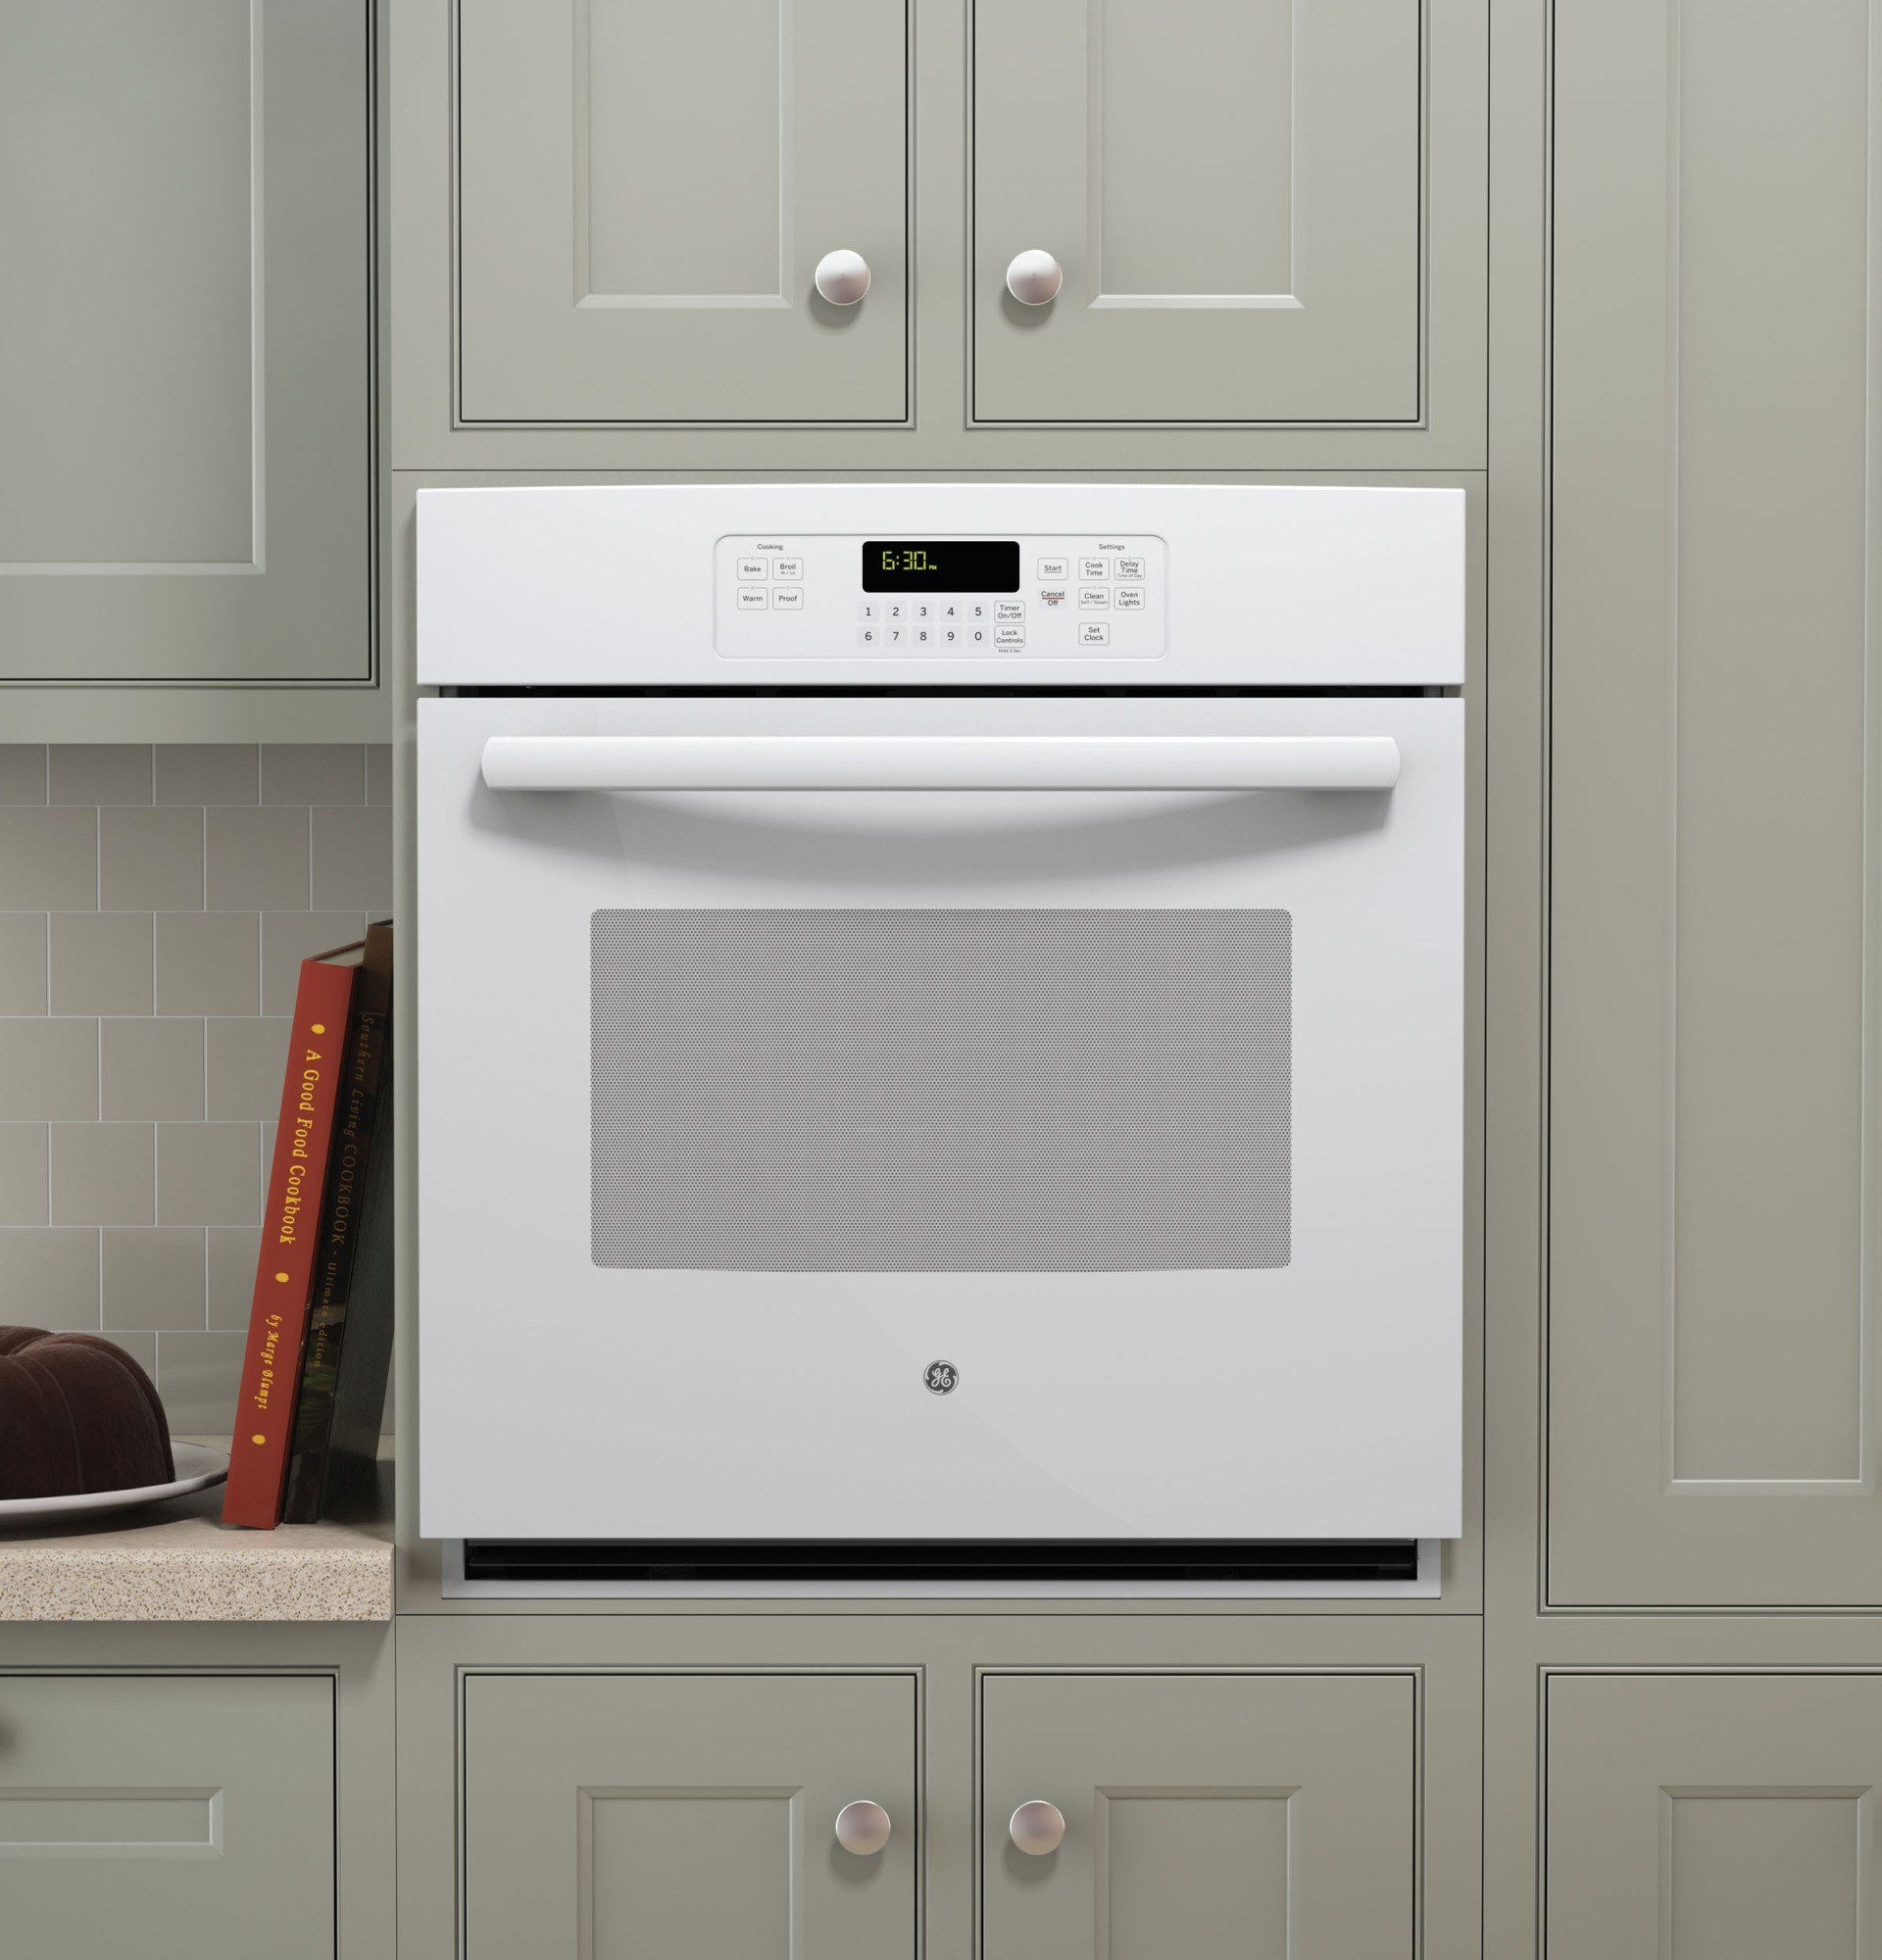 "J K Kitchen Cabinets: GE 27"" Built-In Single Wall Oven - White"